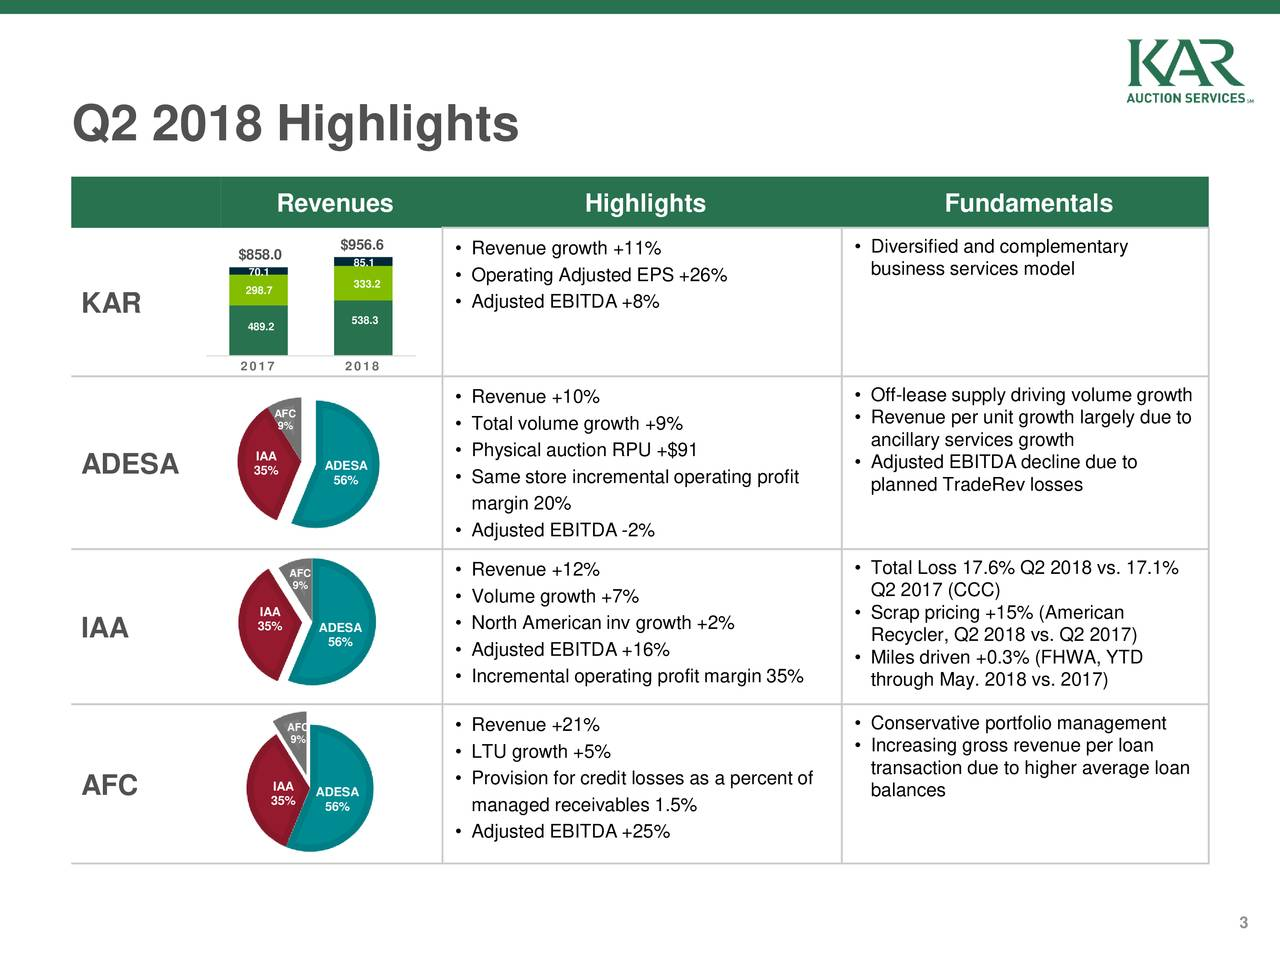 Revenues Highlights Fundamentals $956.6 • Revenue growth +11% • Diversified and complementary $858.0 85.1 70.1 333.2 • Operating Adjusted EPS +26% business services model 298.7 KAR • Adjusted EBITDA +8% 489.2 538.3 2017 2018 • Revenue +10% • Off-lease supply driving volume growth AFC 9% • Total volume growth +9% • Revenue per unit growth largely due to ancillary services growth IAA ADESA • Physical auction RPU +$91 • Adjusted EBITDA decline due to ADESA 35% 56% • Same store incremental operating profit planned TradeRev losses margin 20% • Adjusted EBITDA -2% AFC • Revenue +12% • Total Loss 17.6% Q2 2018 vs. 17.1% 9% • Volume growth +7% Q2 2017 (CCC) IAA • Scrap pricing +15% (American 35% ADESA • North American inv growth +2% IAA 56% Recycler, Q2 2018 vs. Q2 2017) • Adjusted EBITDA +16% • Miles driven +0.3% (FHWA, YTD • Incremental operating profit margin 35% through May. 2018 vs. 2017) AFC • Revenue +21% • Conservative portfolio management 9% • Increasing gross revenue per loan • LTU growth +5% • Provision for credit losses as a percent of transaction due to higher average loan AFC IAA ADESA balances 35% 56% managed receivables 1.5% • Adjusted EBITDA +25% 3